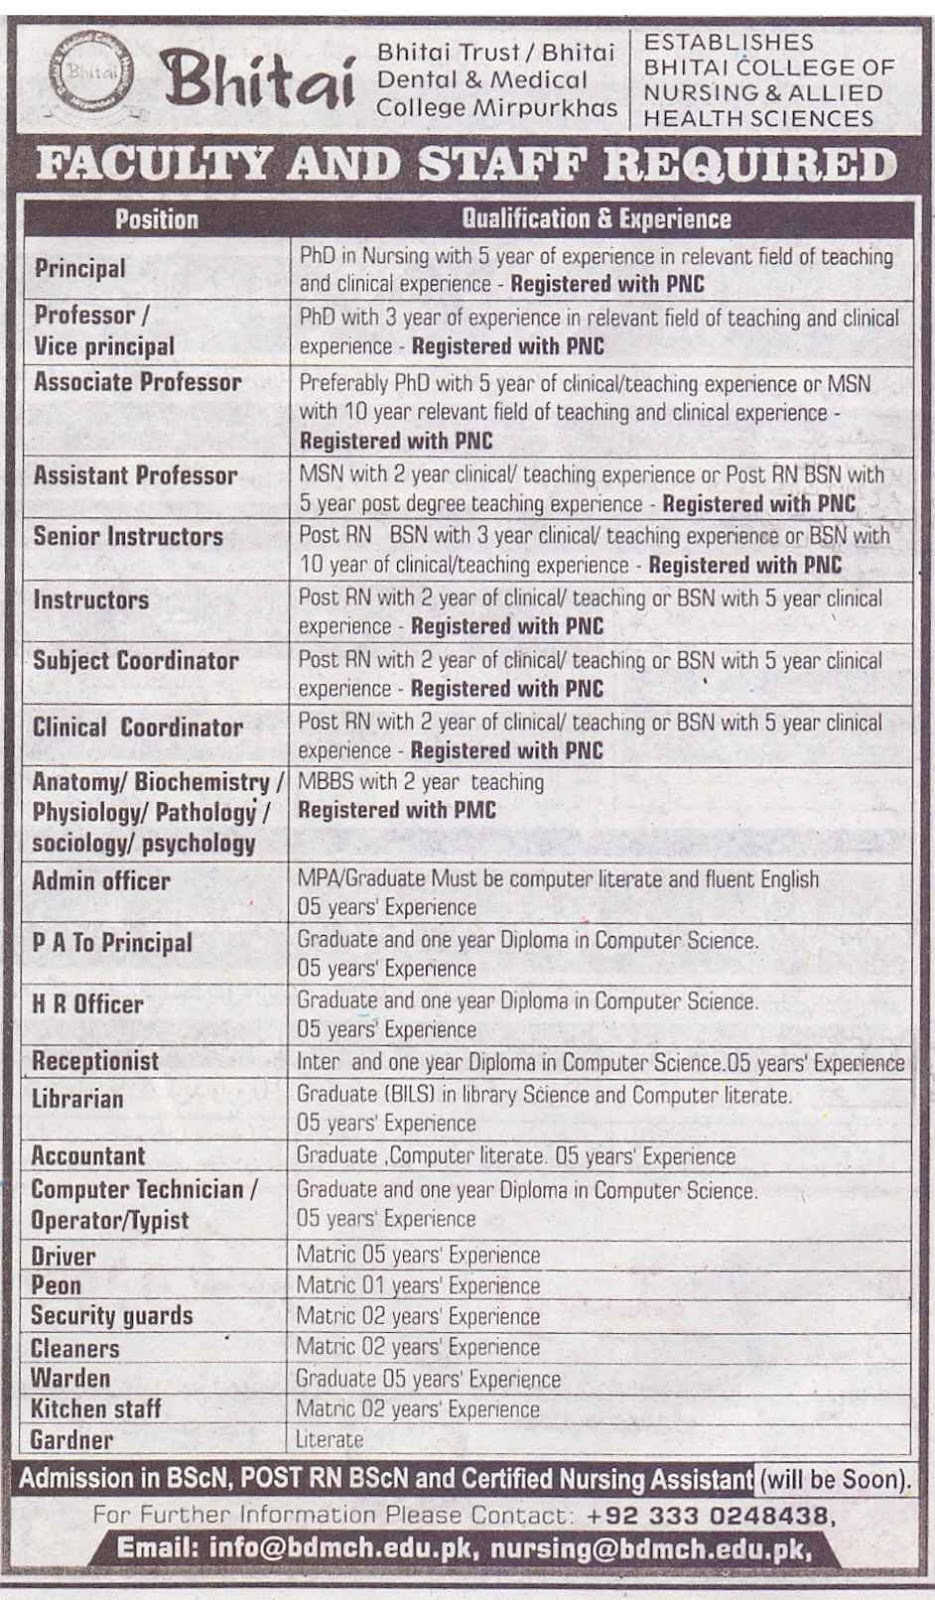 Bhitai Medical & Dental College Jobs 2020 Mirpurkhas Faculty and Staff Required